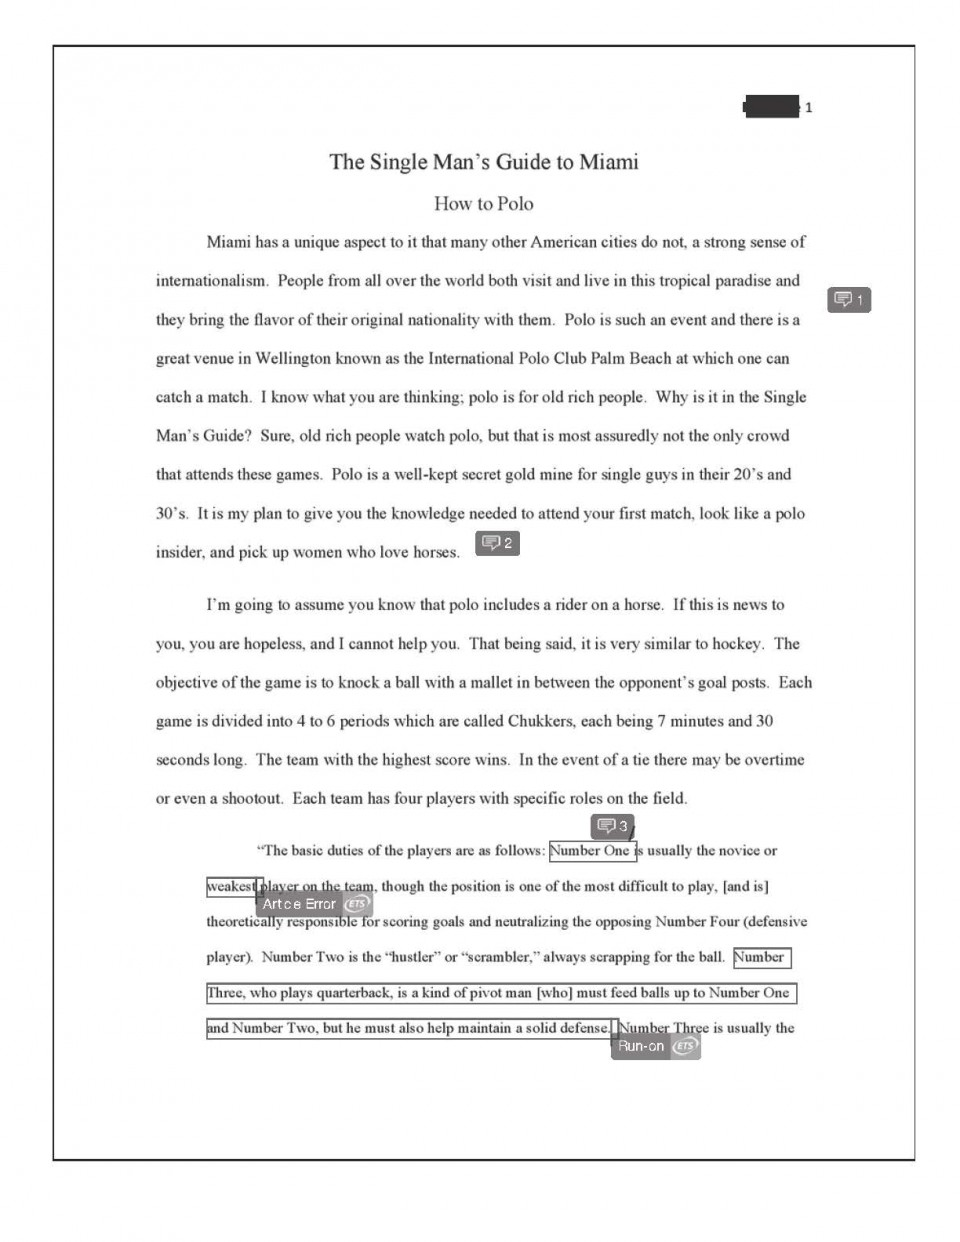 005 Informative Essay Topics Essays Sample Funny Argumentative For Middle School Final How To Polo Redacted P College Students Hilarious Good Remarkable 2018 Prompts High Prompt 4th Grade 960